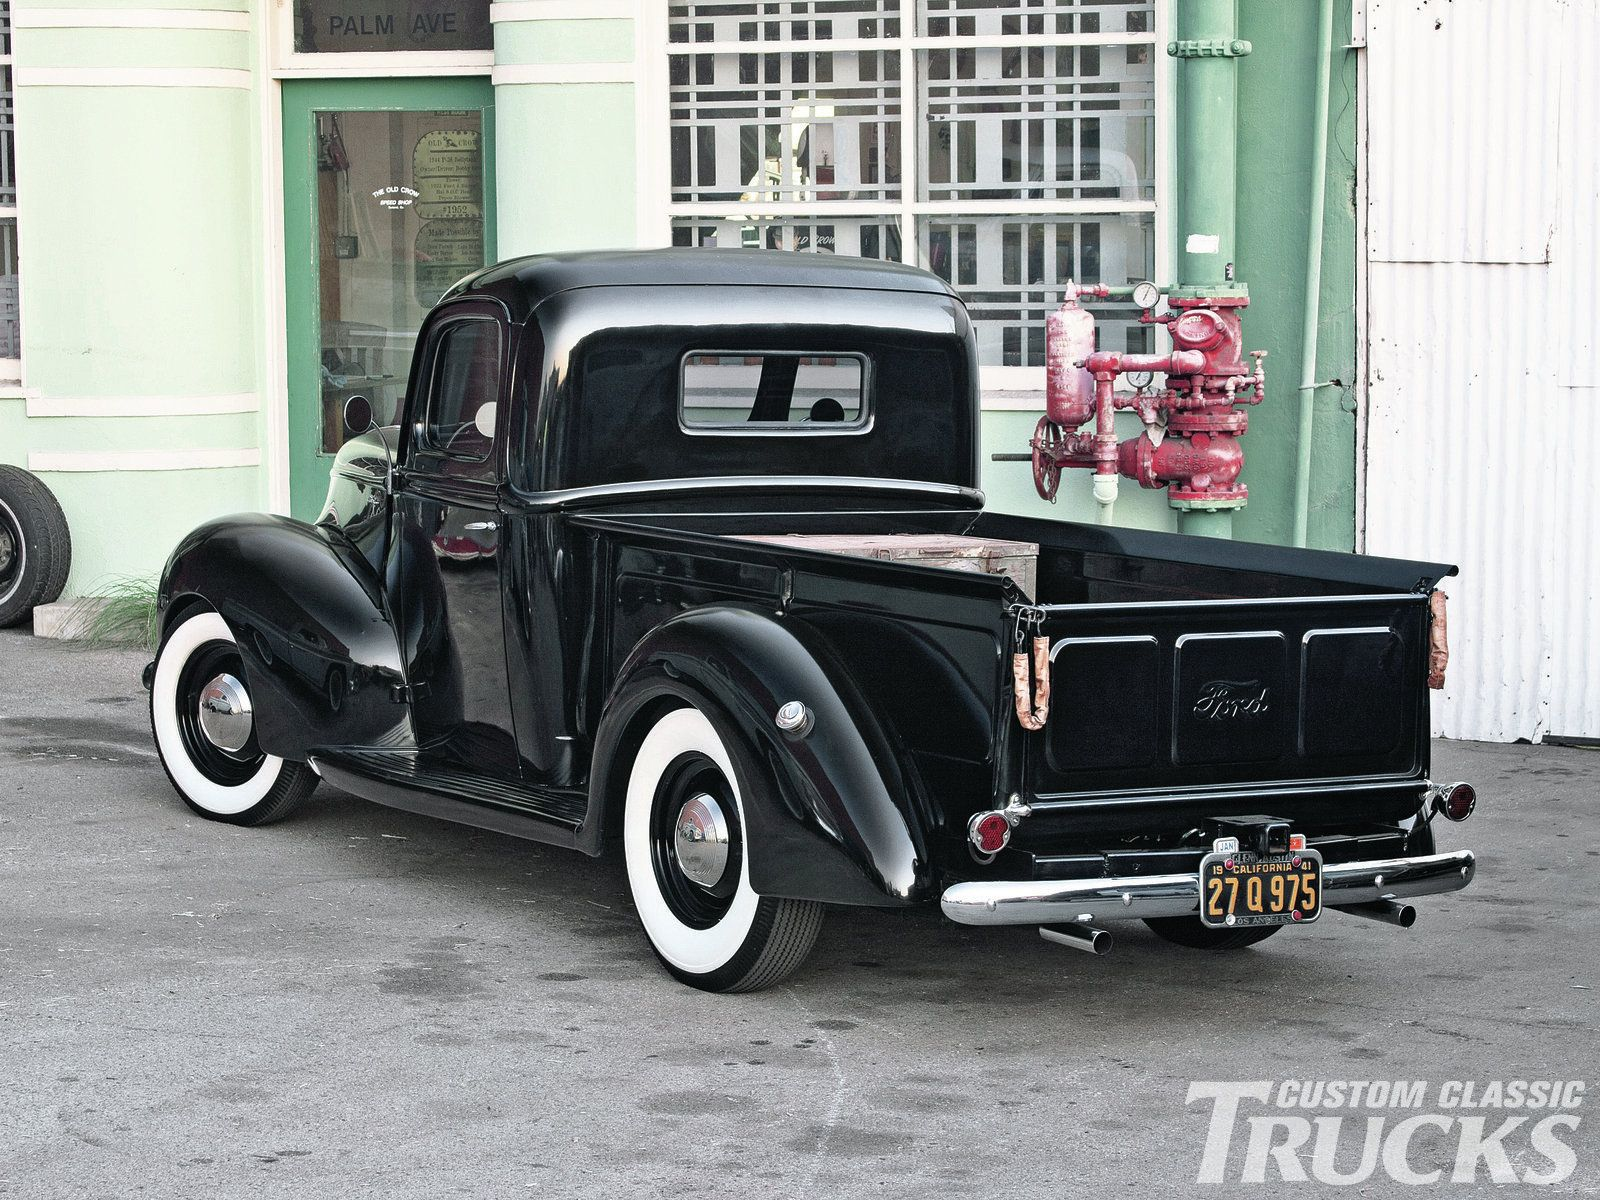 1940 Ford Truck Tail Gate Photo 7 1940 Ford 1940 Ford Truck Classic Trucks Magazine